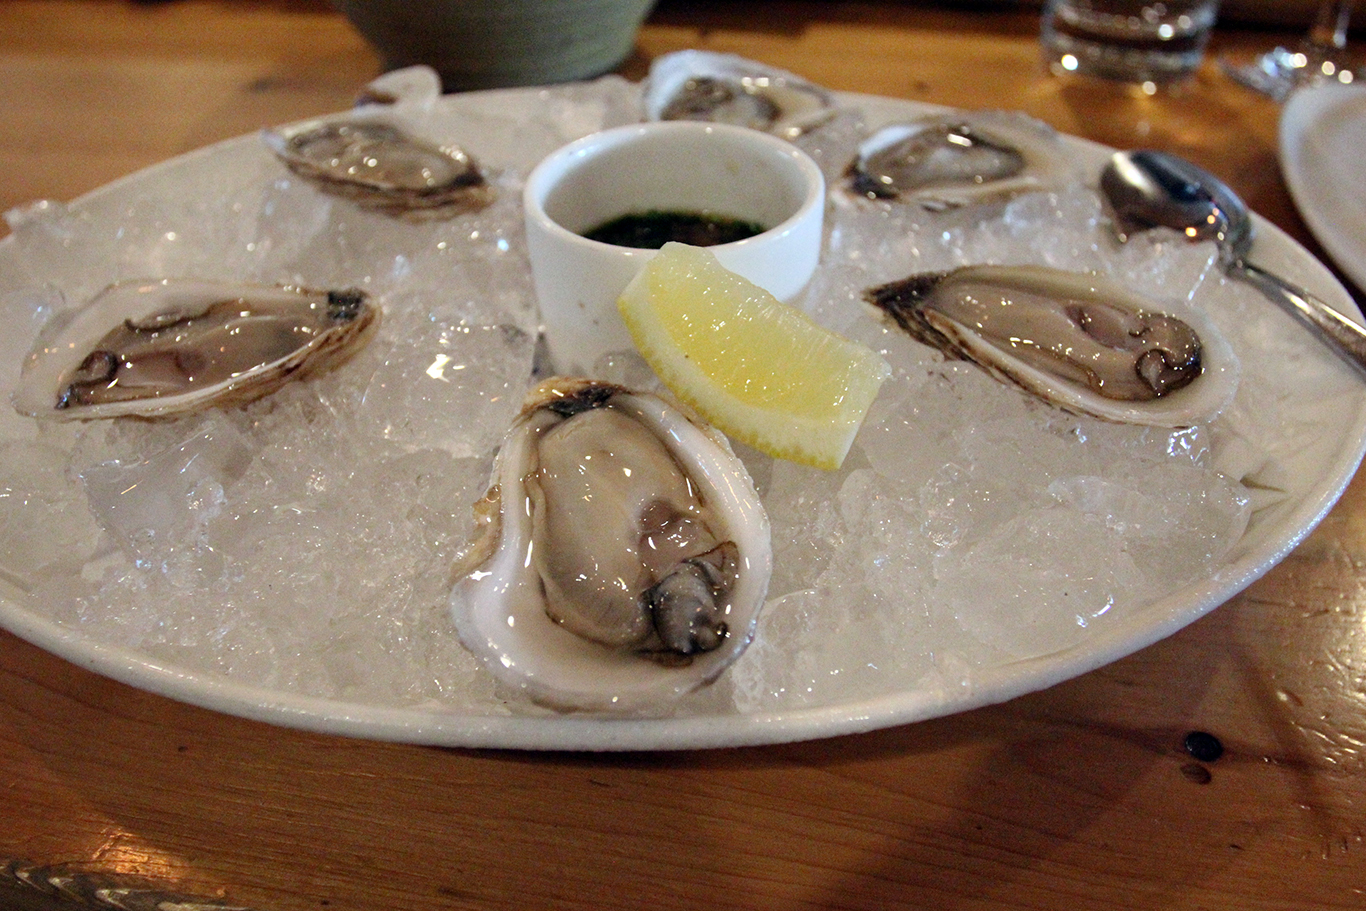 Oysters at Selden Standard Restaurant in Detroit, MI